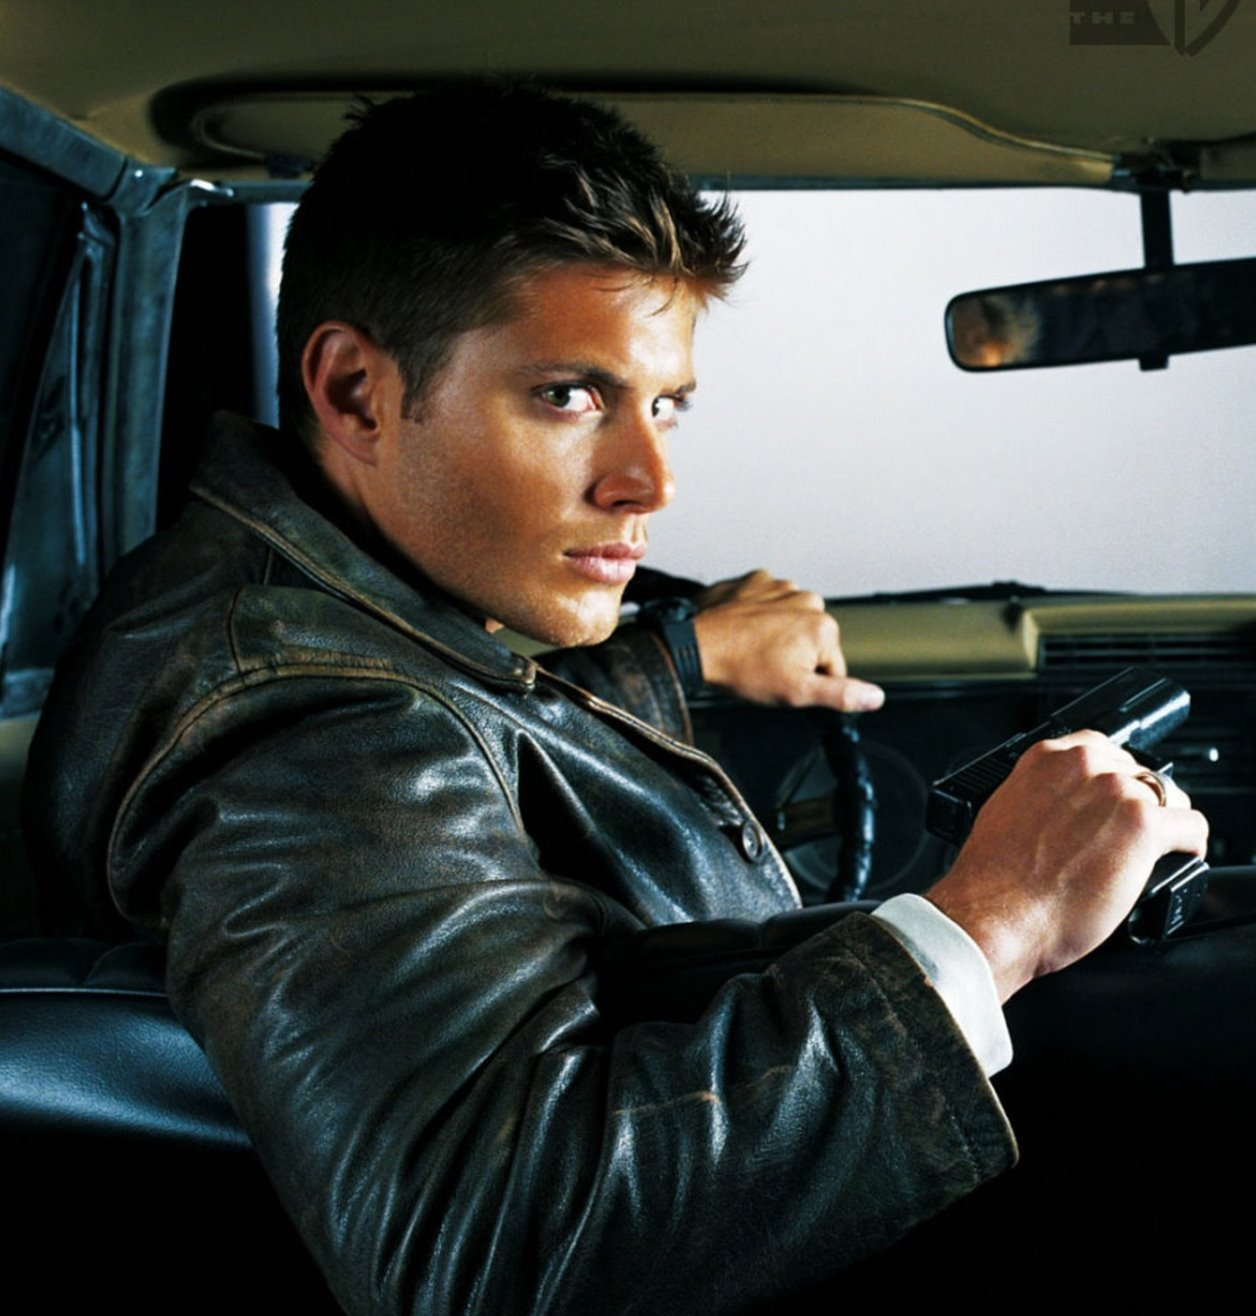 Who Looks Sexier Driving The Impala Poll Results